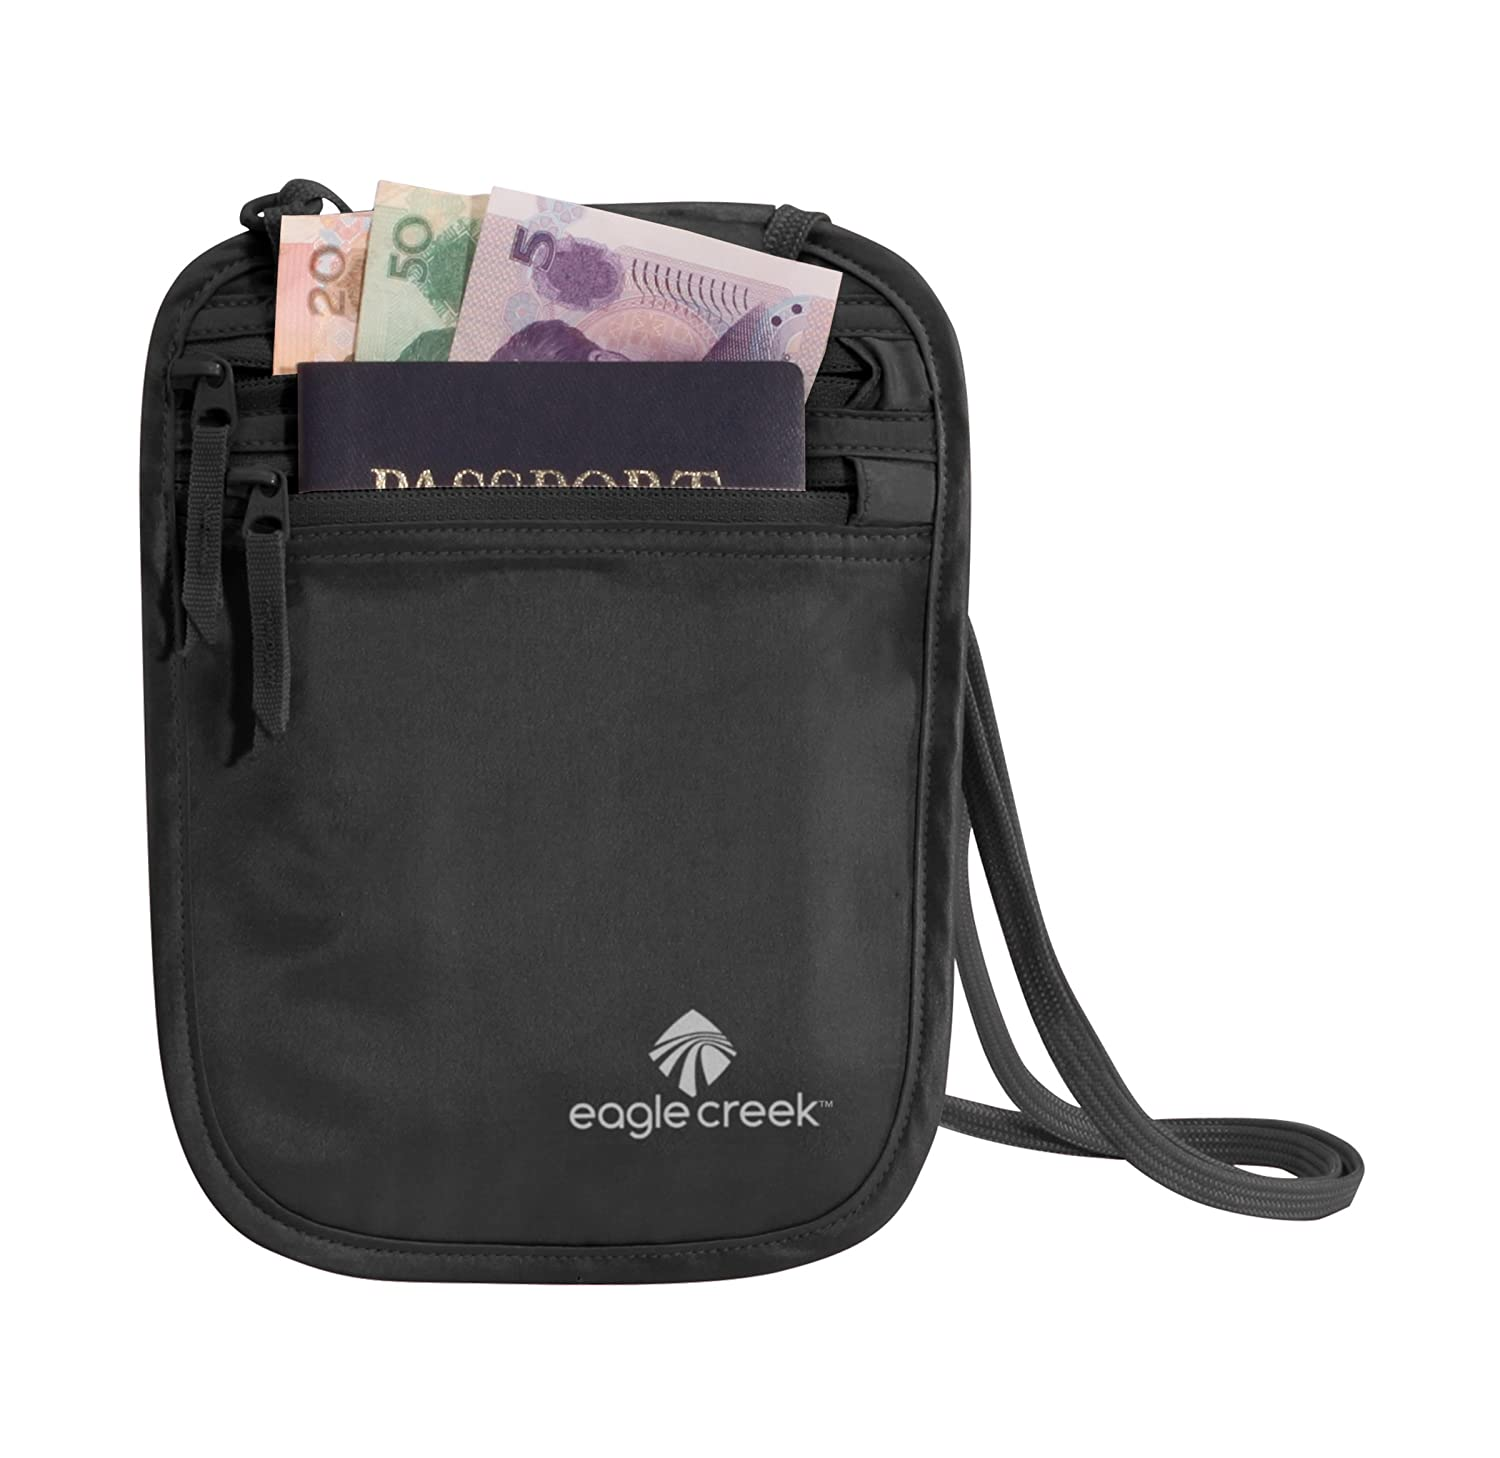 6caeed6d5421 EAGLE CREEK TRAVEL GEAR Undercover Silk Neck Wallet, Black